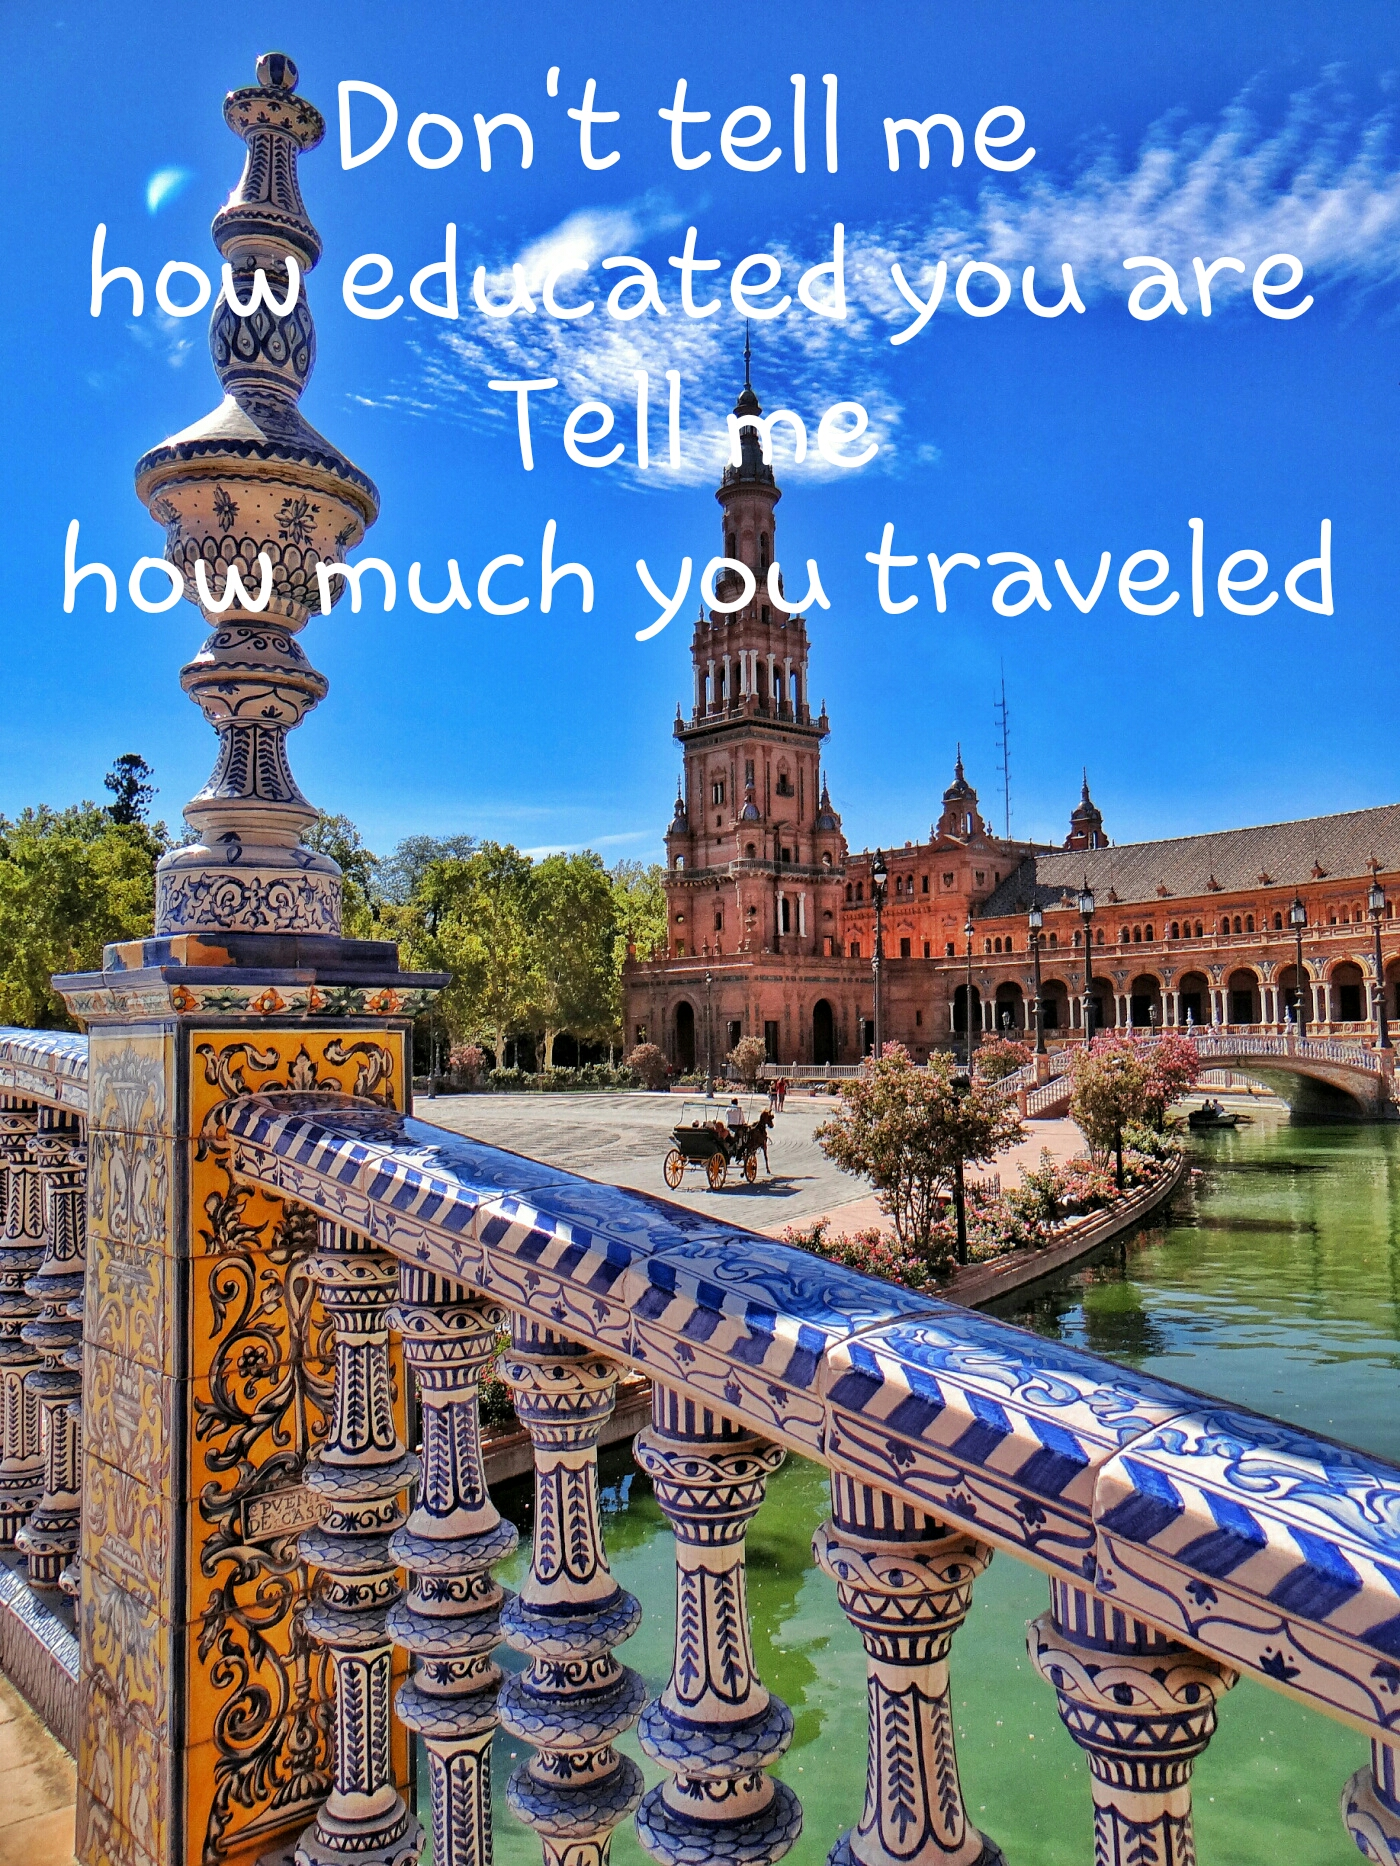 15 inspiring travel quotes to start packing your bags ...